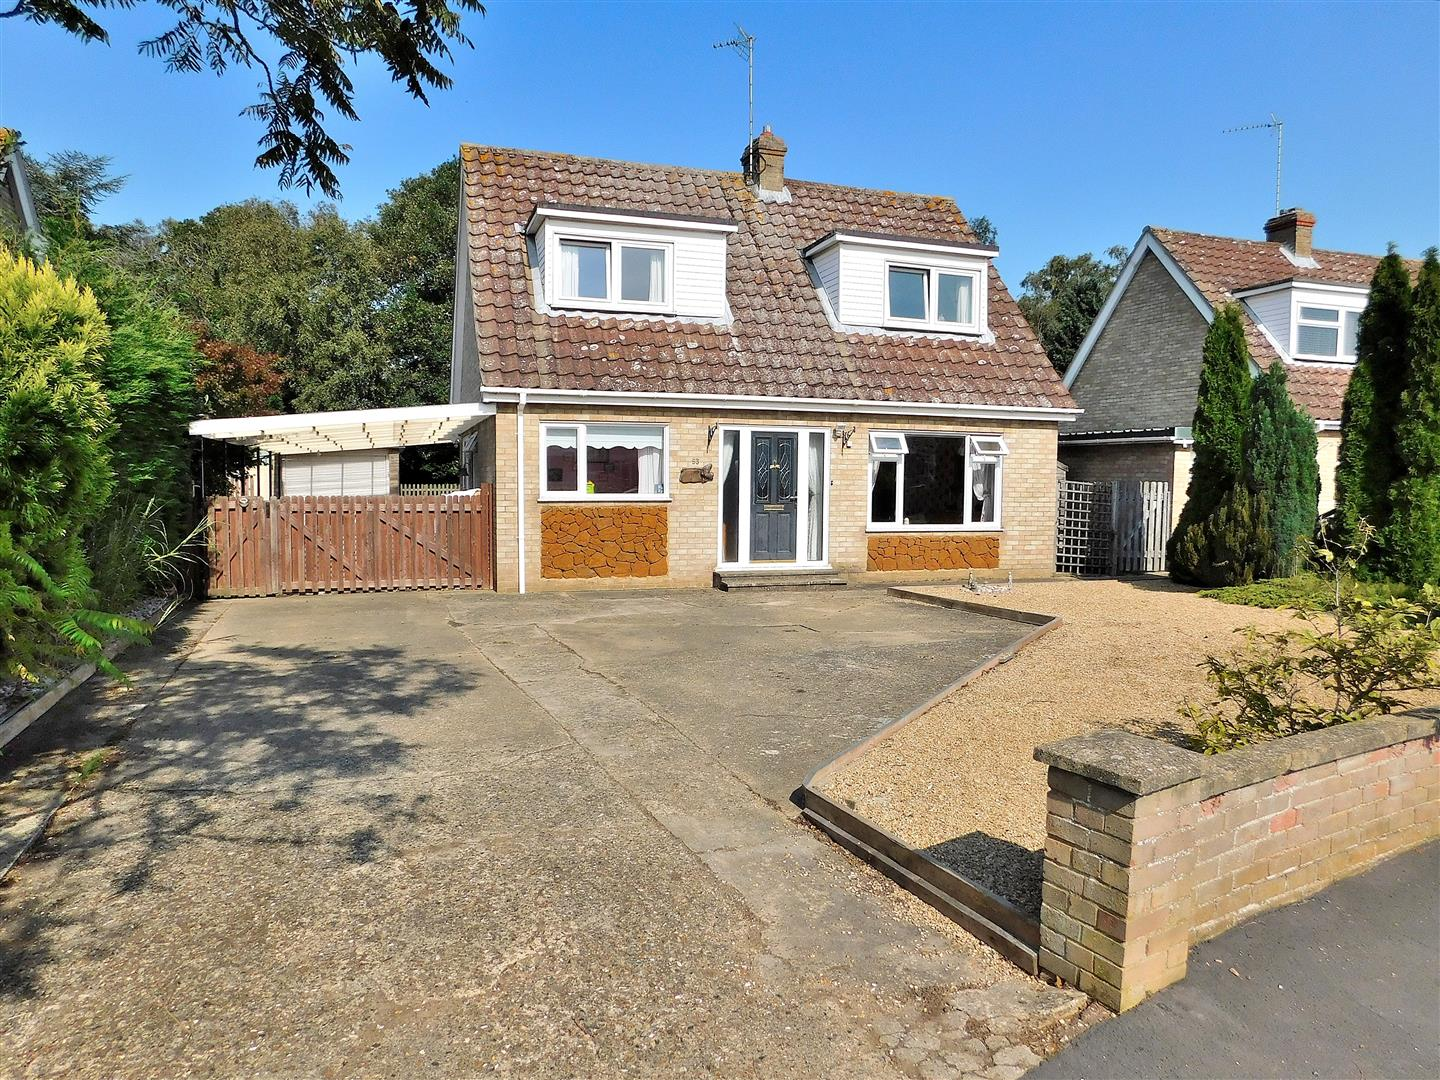 3 bed detached bungalow for sale in King's Lynn, PE31 6PT 0